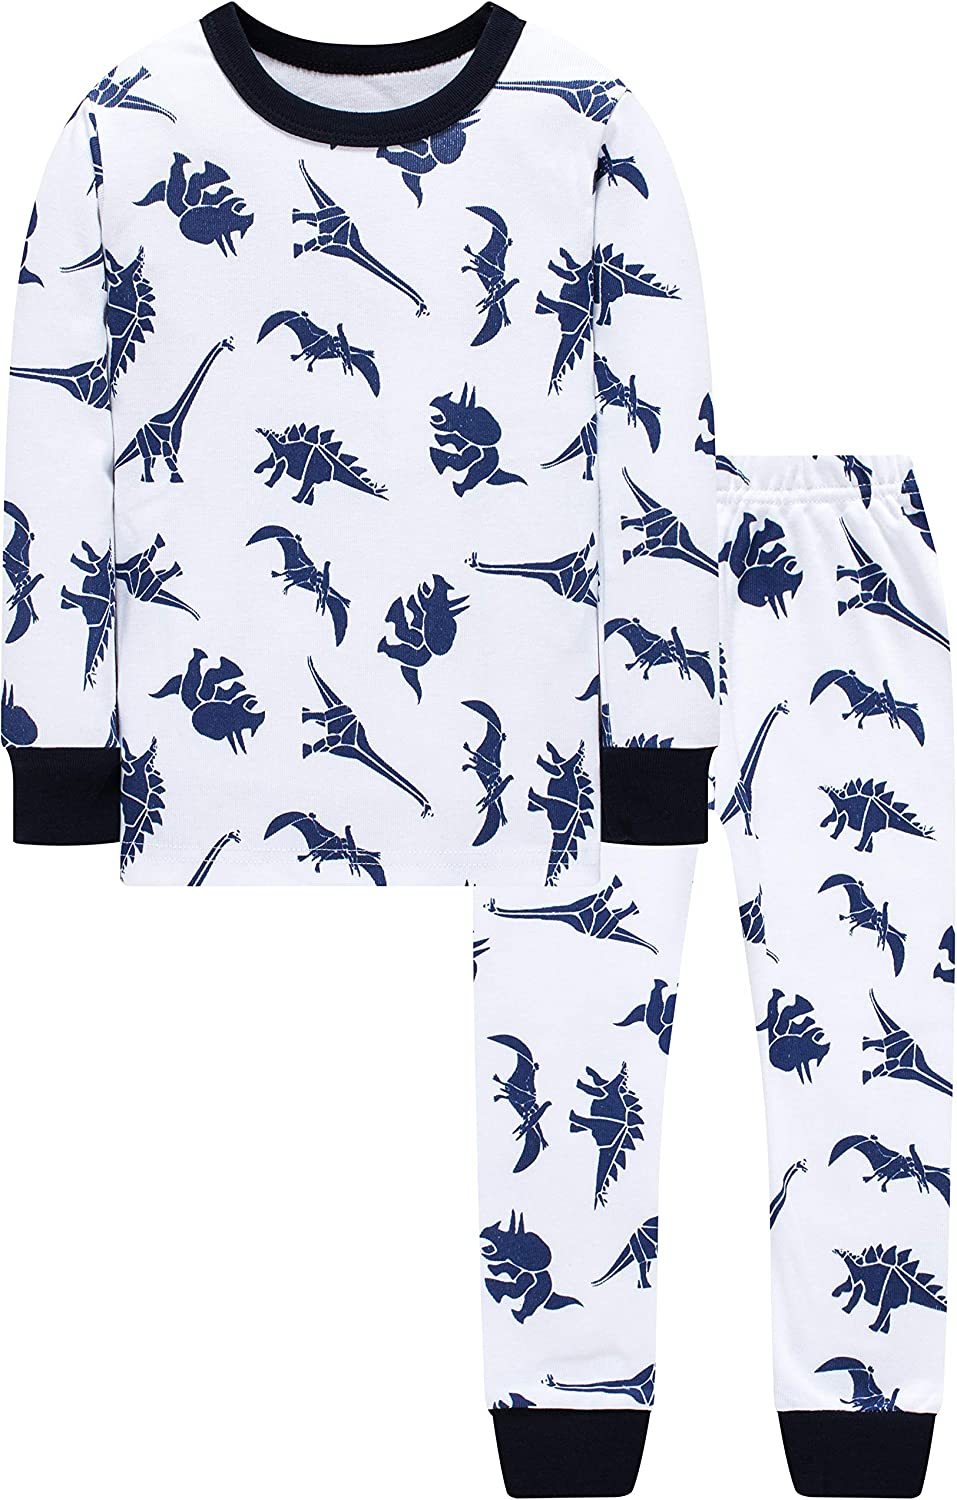 Pajamas for Boys Kids Christmas Children Sleepwear Grow in The Dark T-Rex Dinosaurs 4 Pieces Pants Set